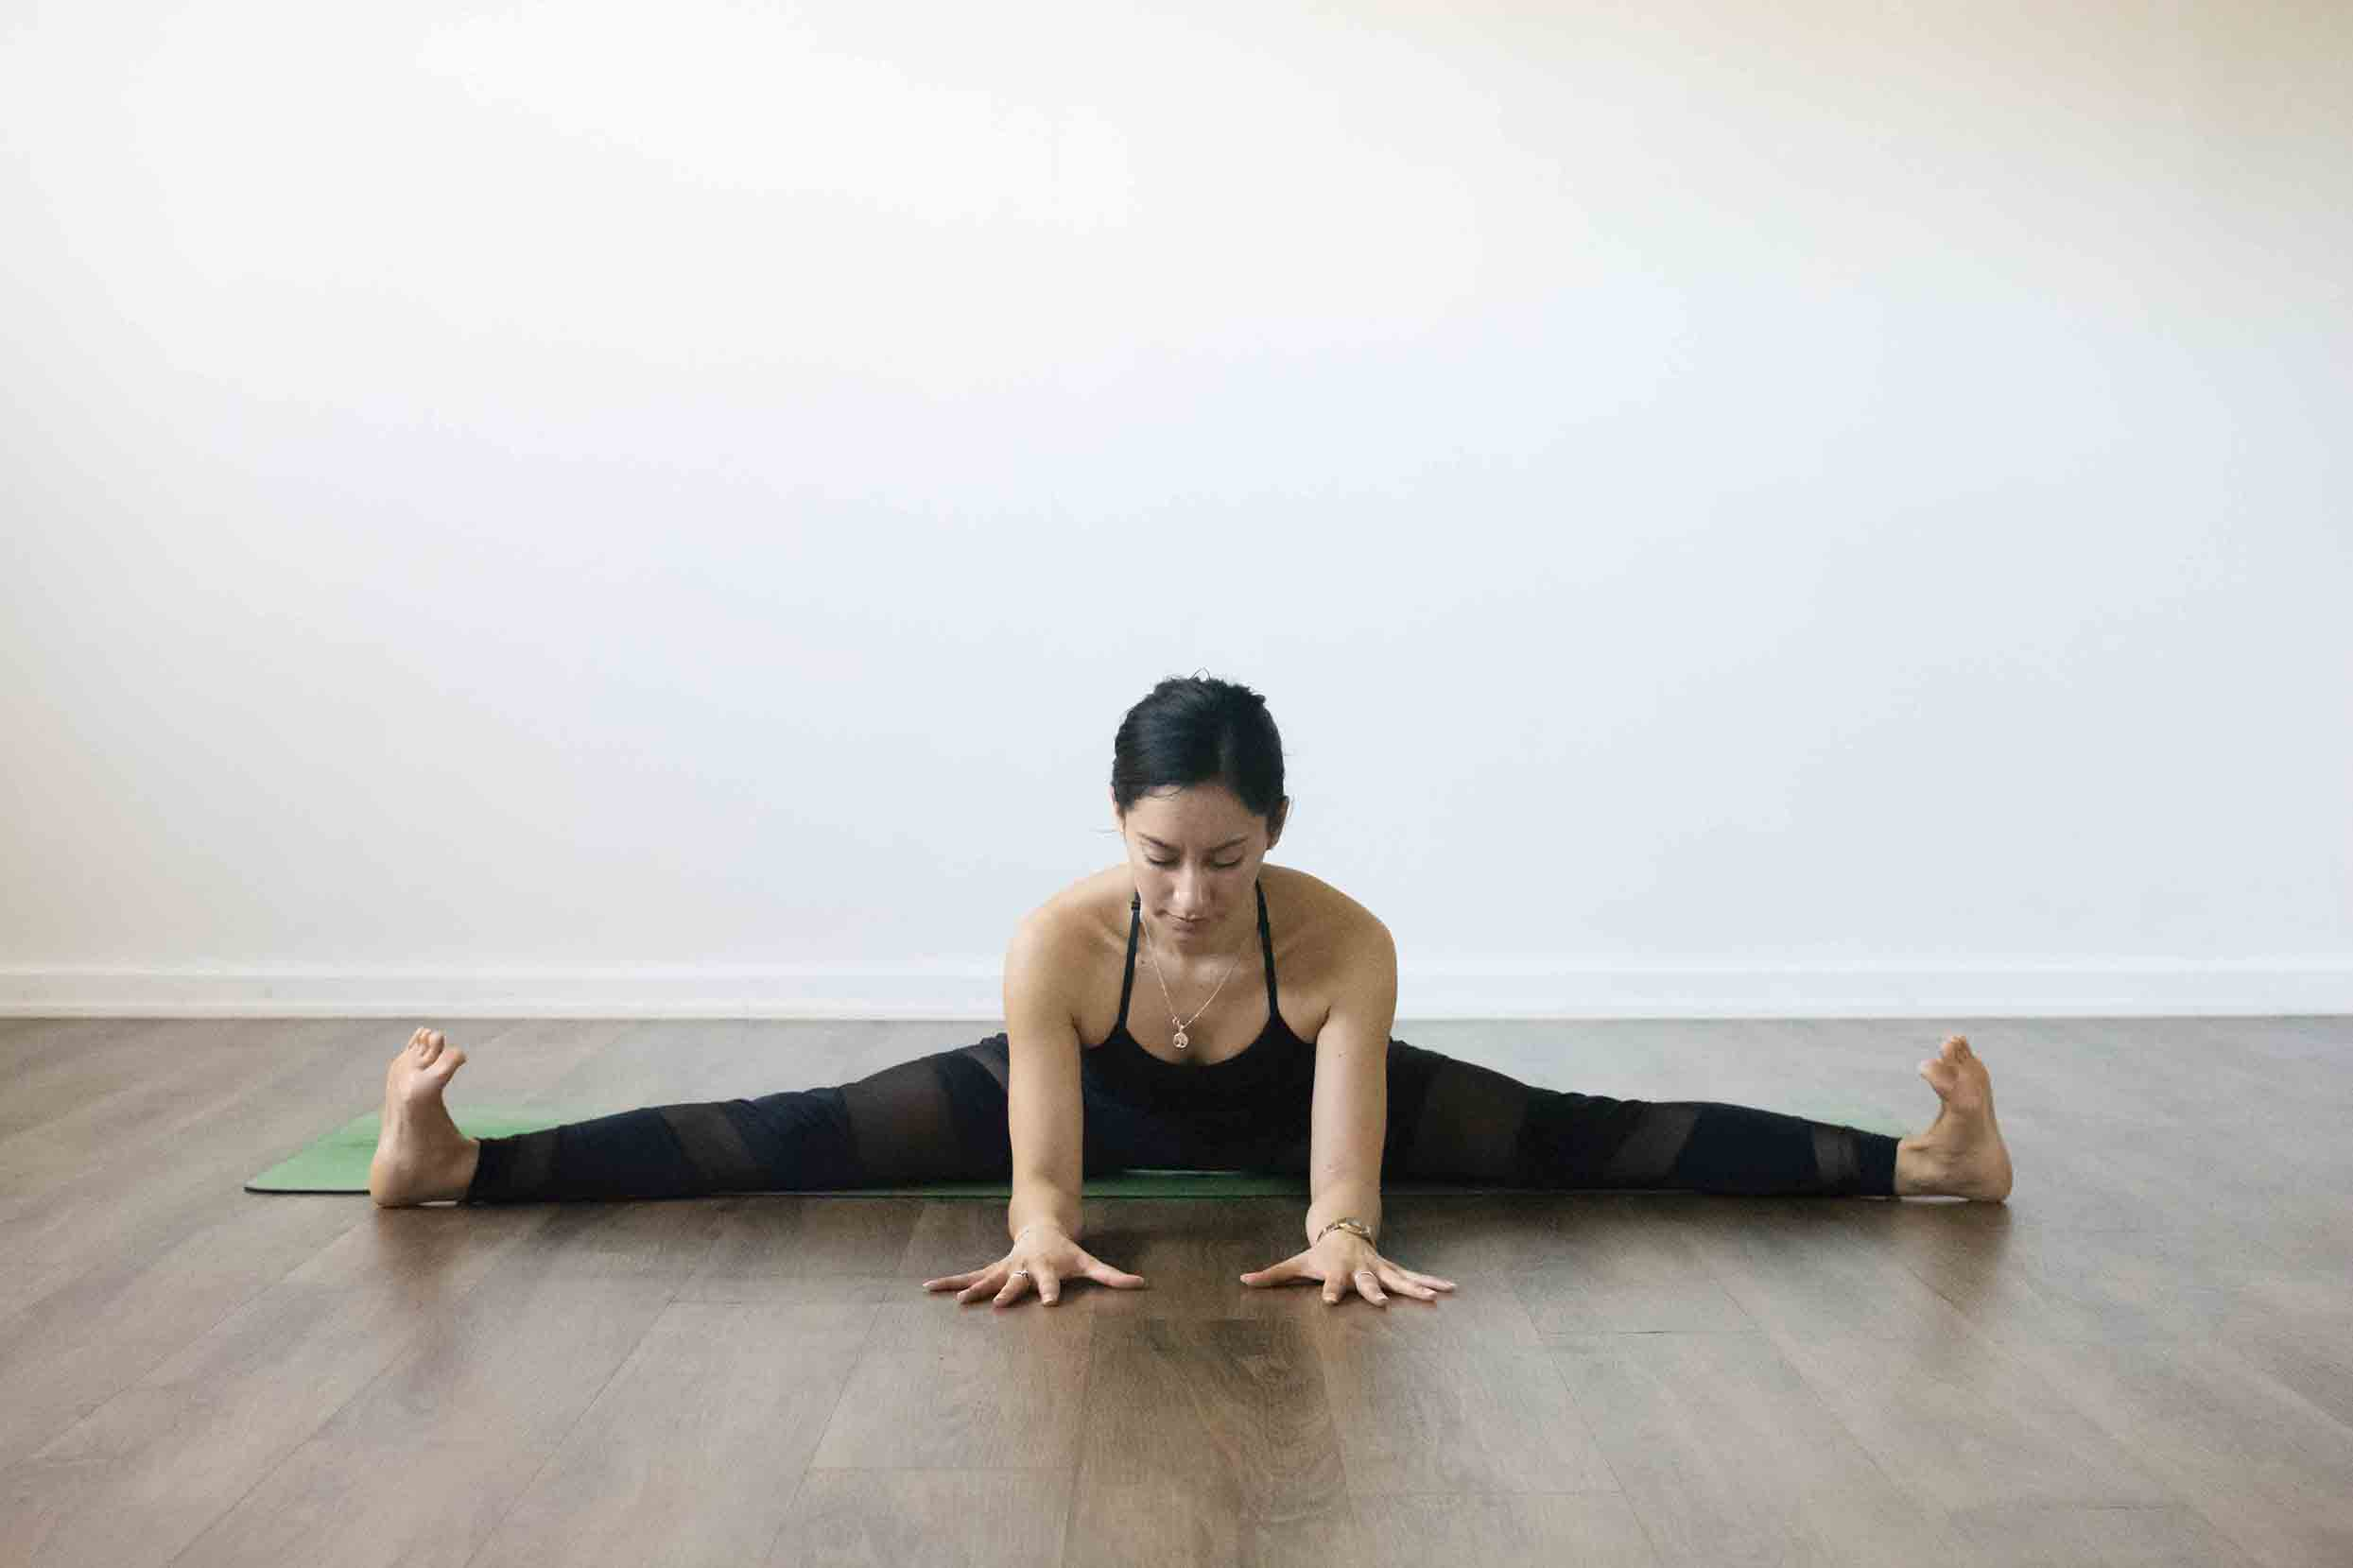 Upavistha Konasana - Wide-Angle Seated Forward Bend Pose